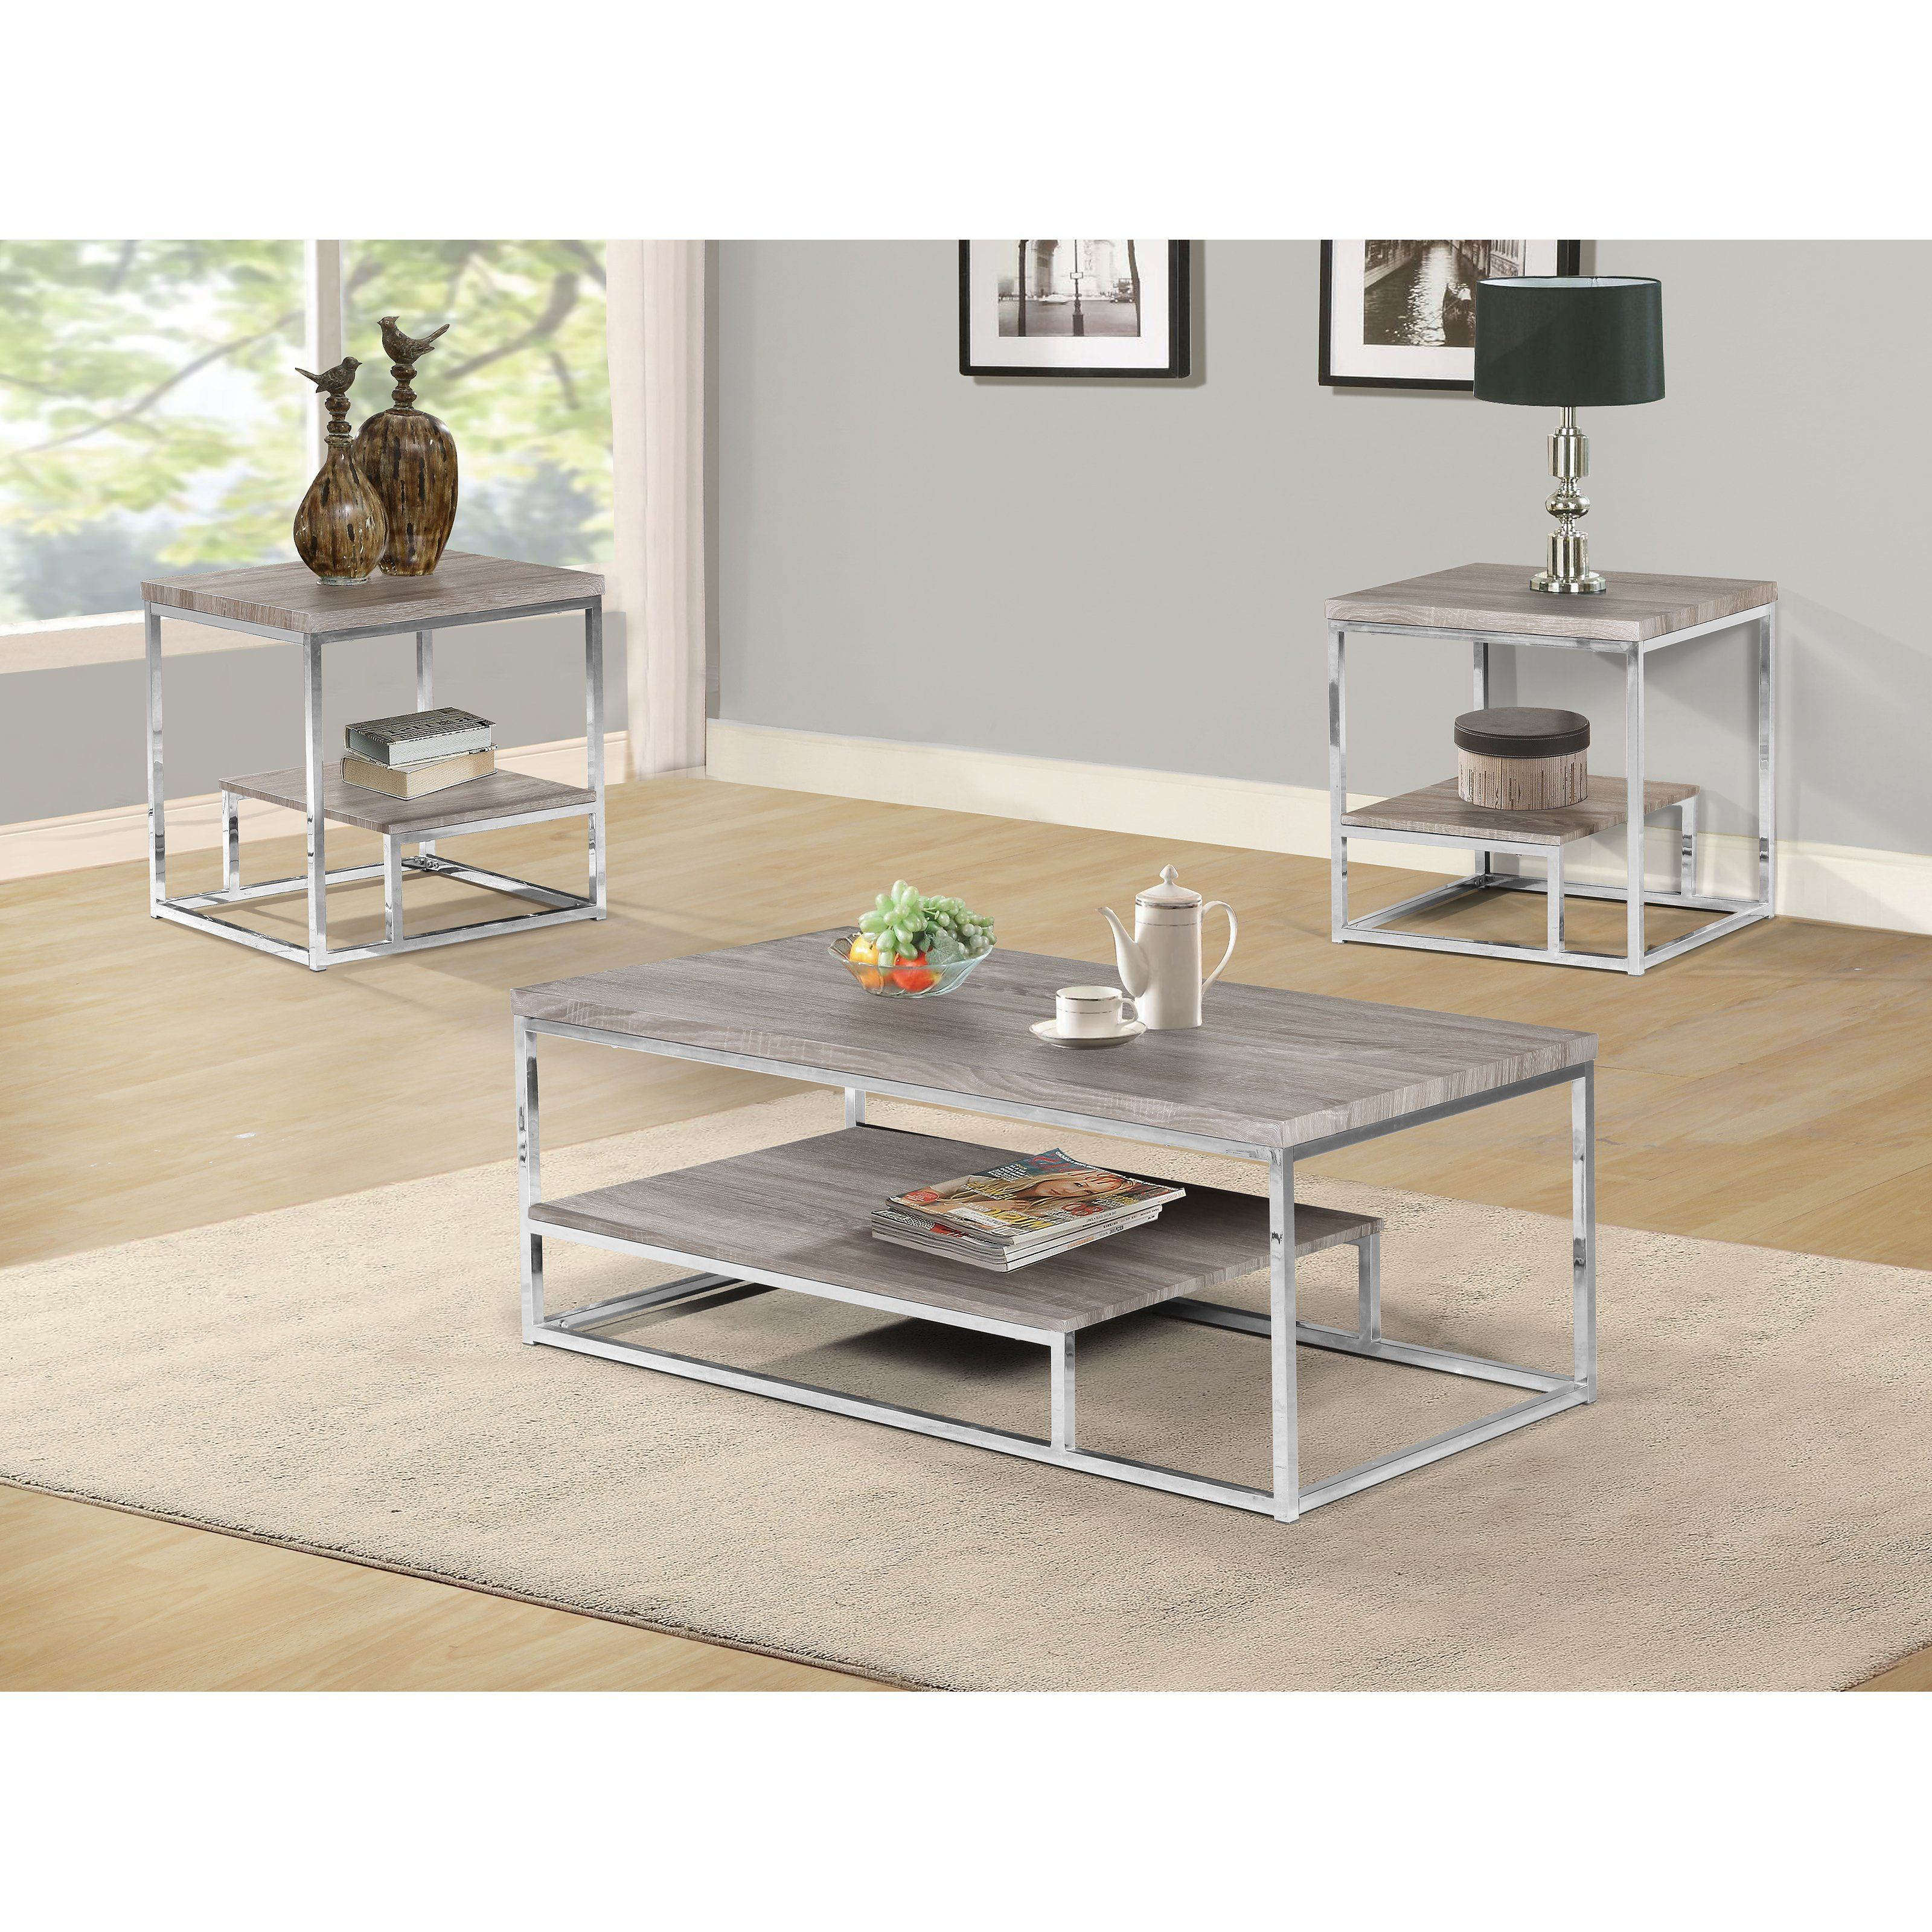 Home Source Industries Pelican Coastal Coffee Table Set   from ...